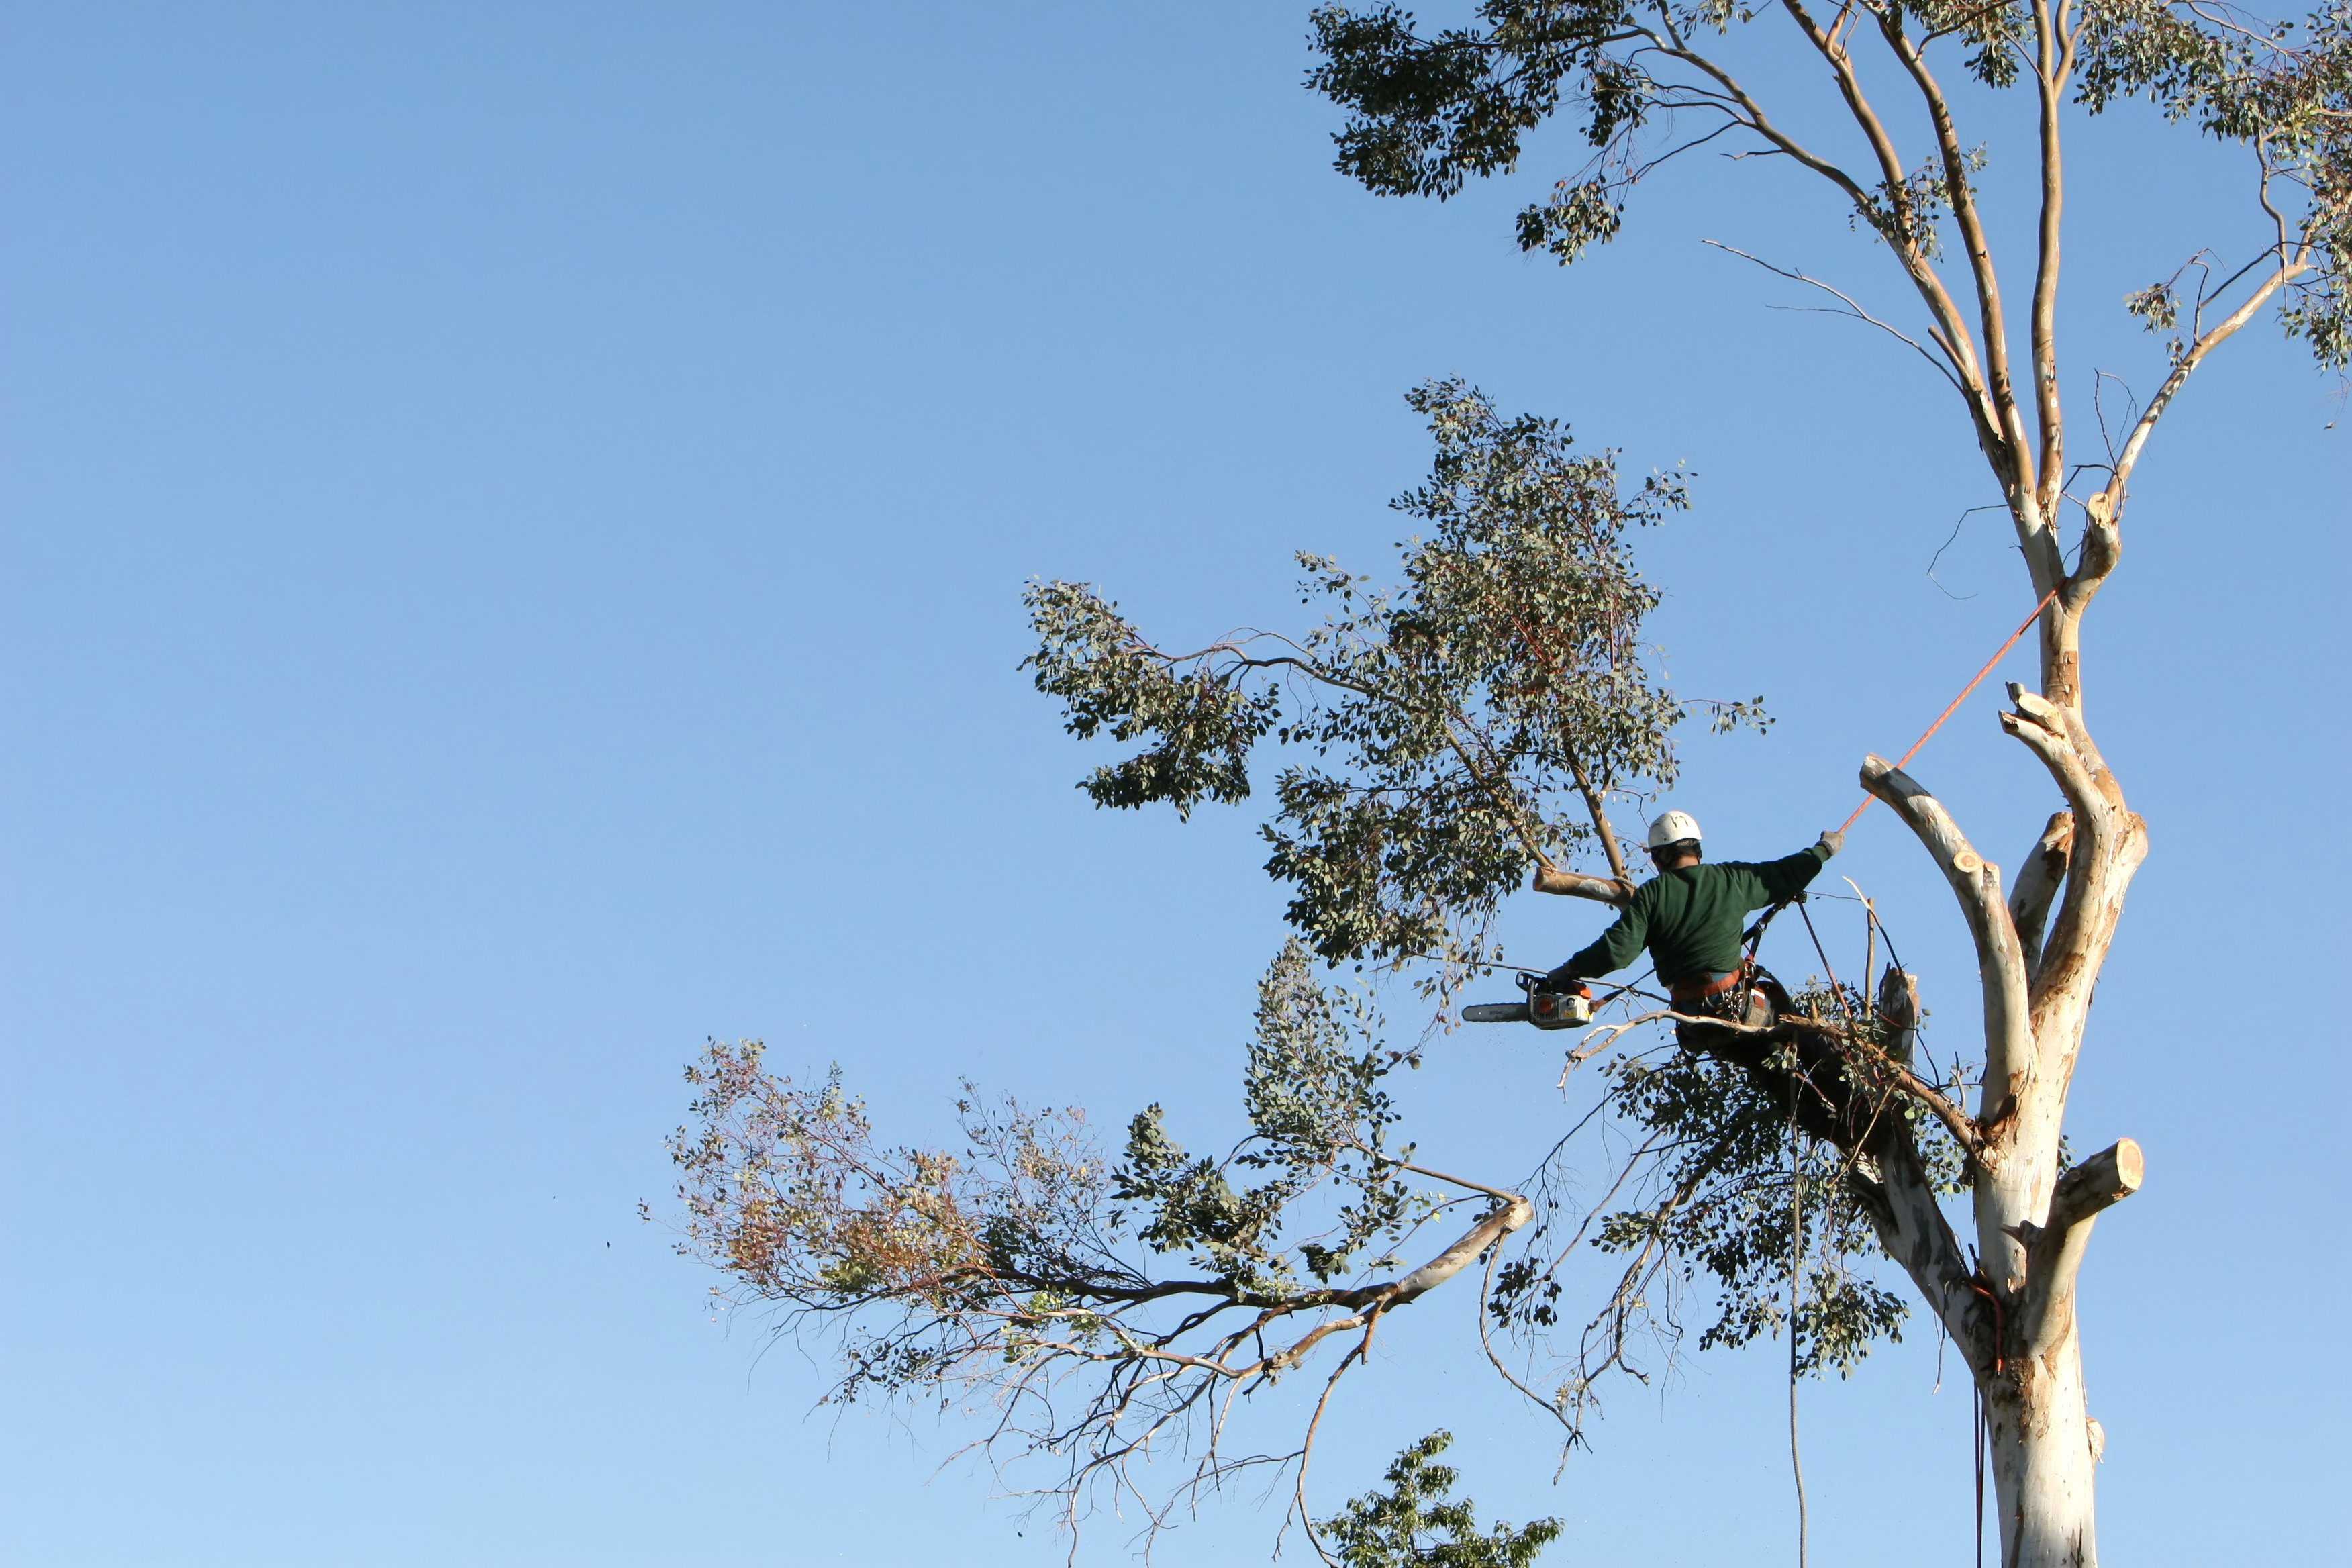 Worker in a tree top removing branches